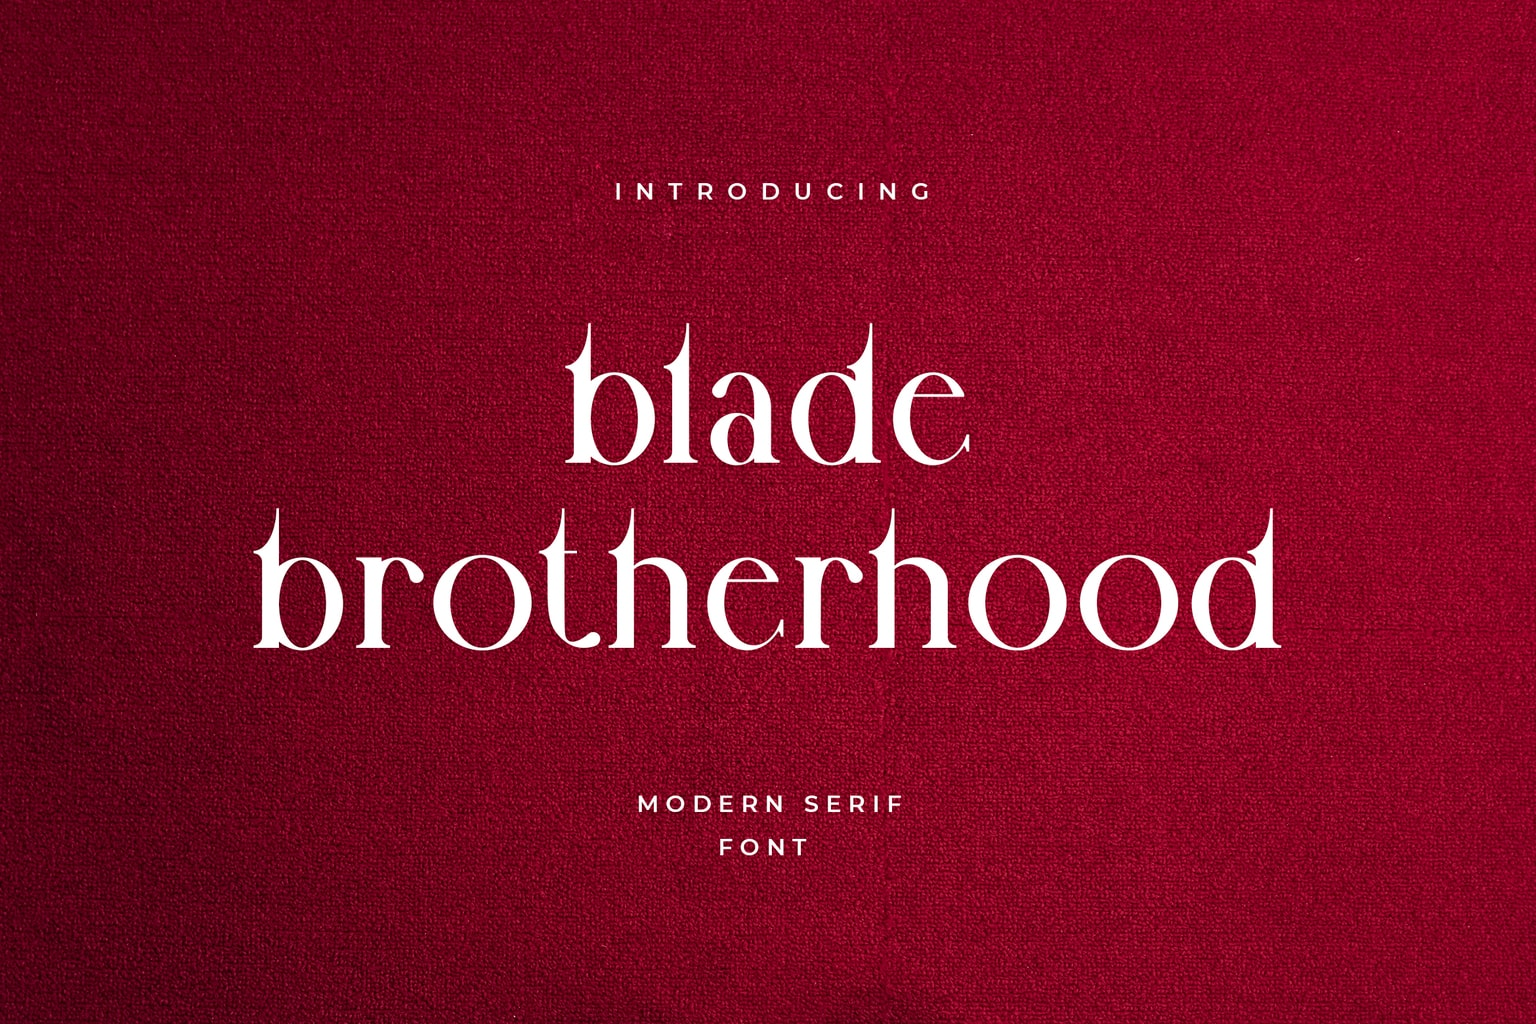 fonts blade brotherhood